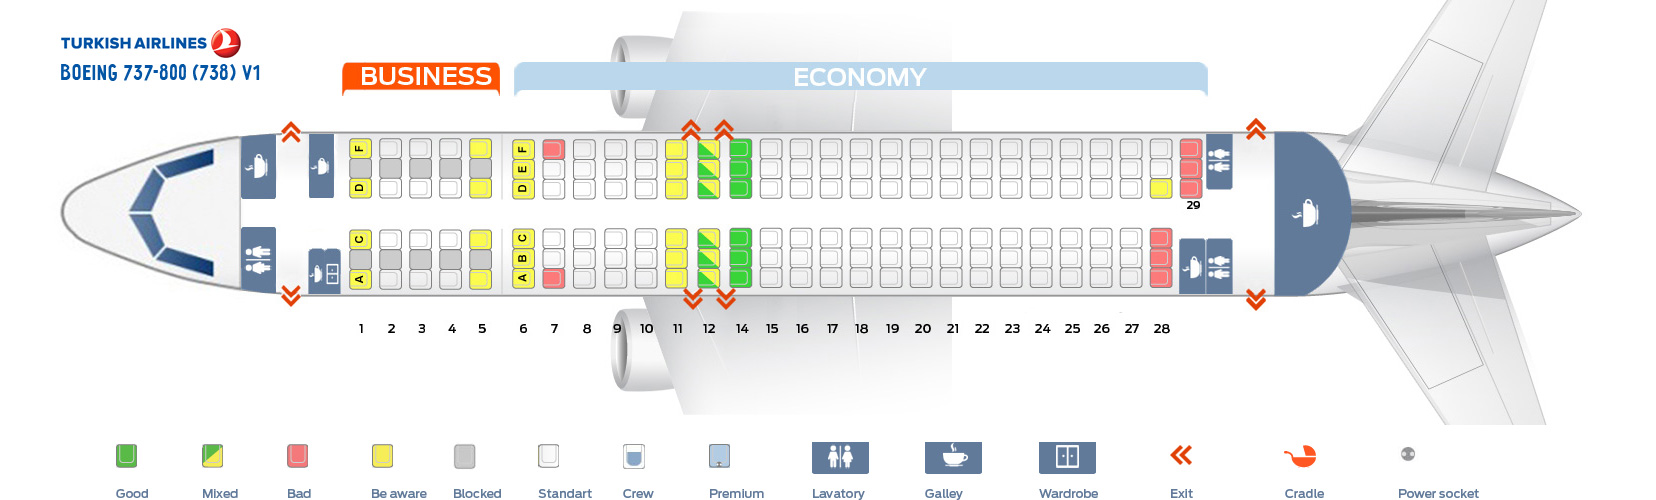 Boeing 737-800 Seat Map Seat map Boeing 737 800 Turkish Airlines. Best seats in the plane